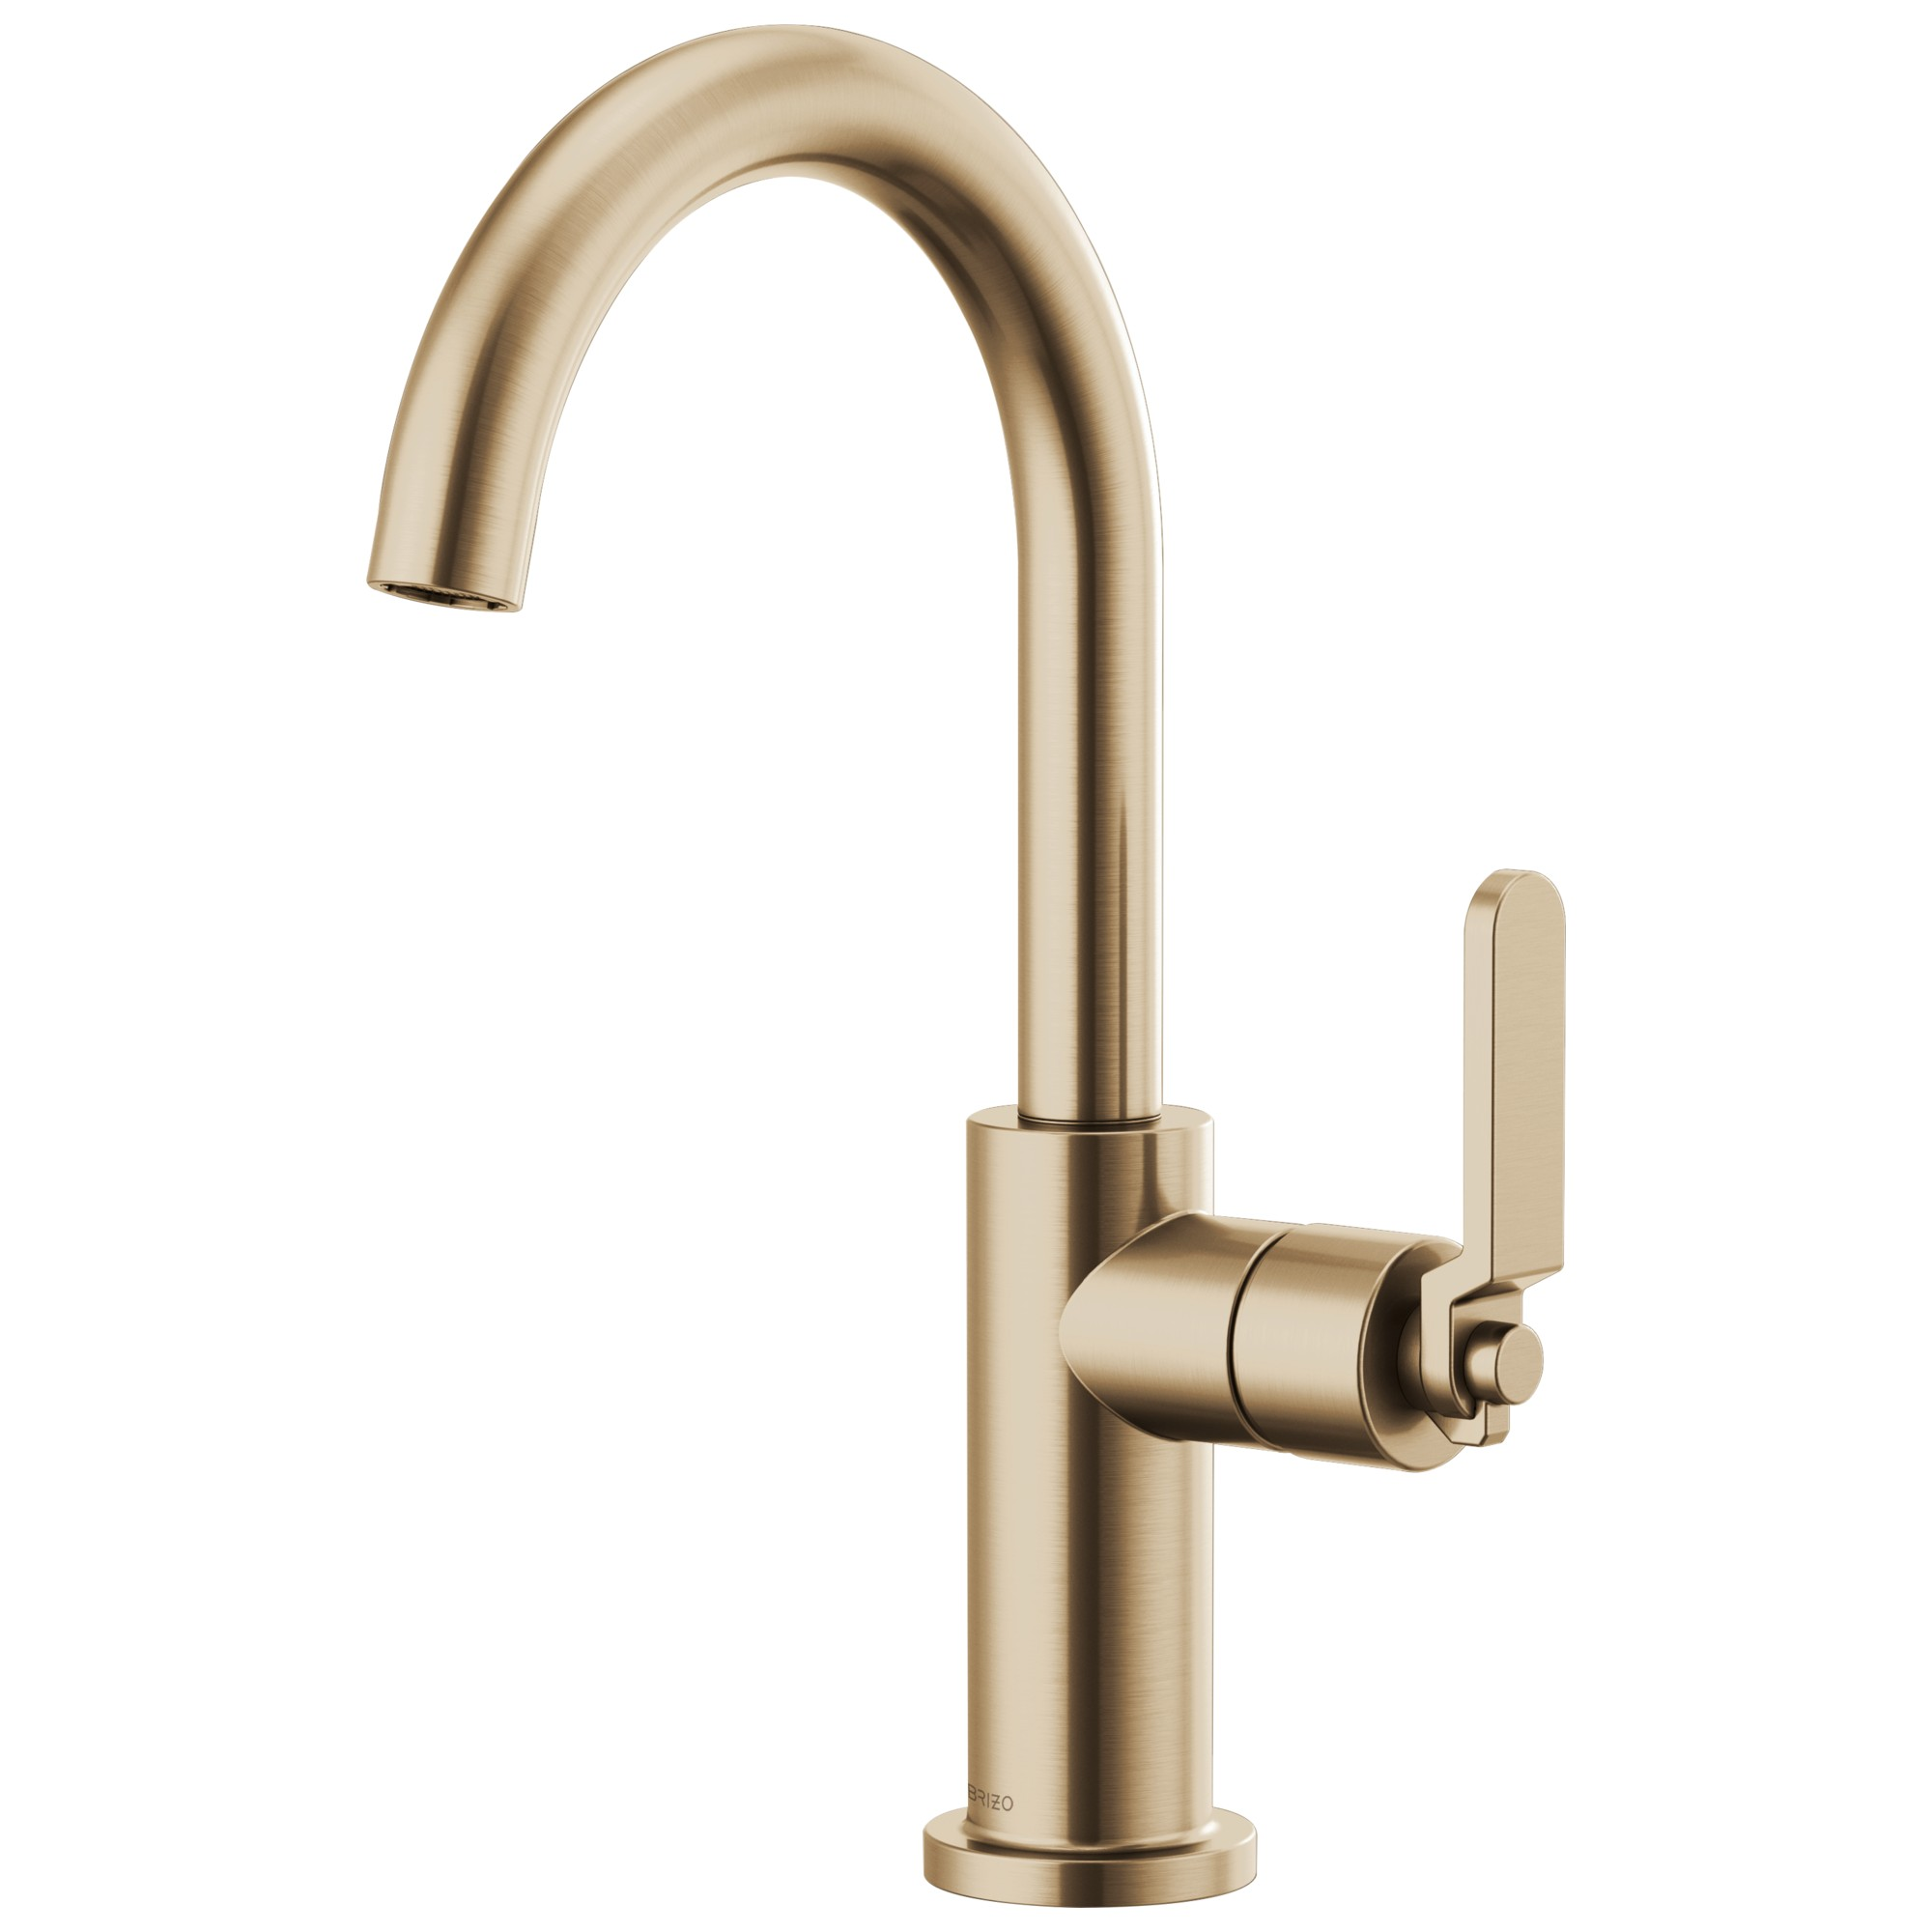 Brizo 61044LF-GL Litze Bar Faucet with Arc Spout and Industrial Handle - Luxe Gold